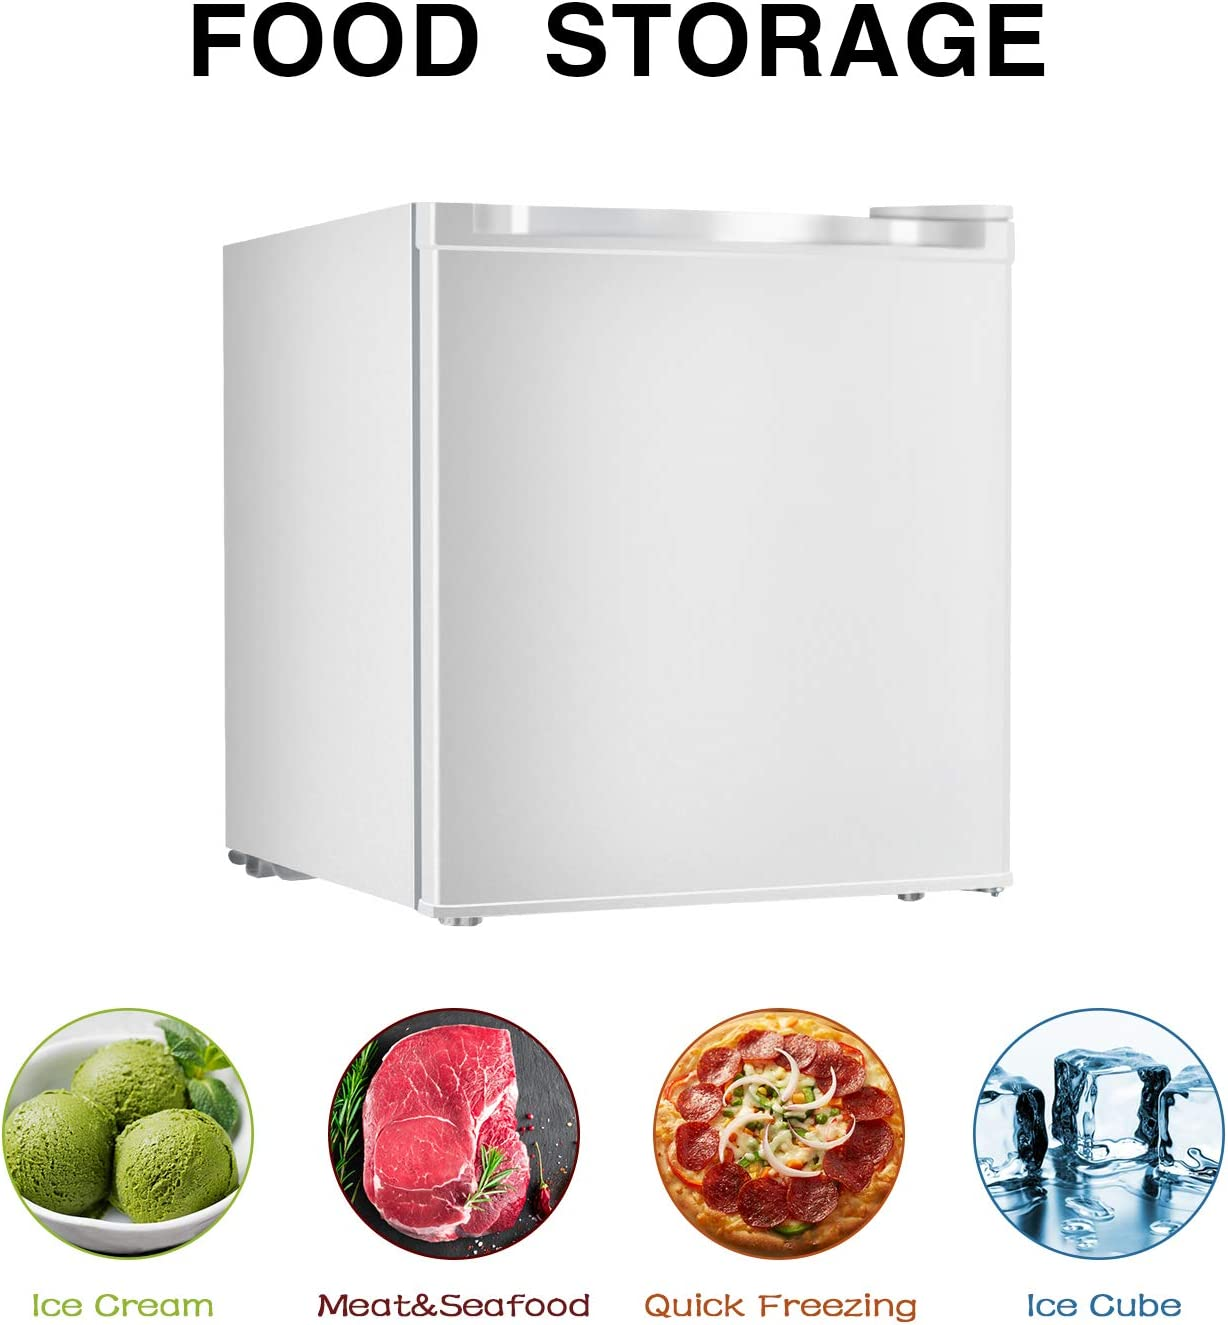 ELECWISH 1.1 cubic feet Mini Refrigerator Energy Star Upright Freezer Single Reversible Door White Kitchen and Bedroom Super Quiet Mini Fridge with Removable Shelves for Living Room